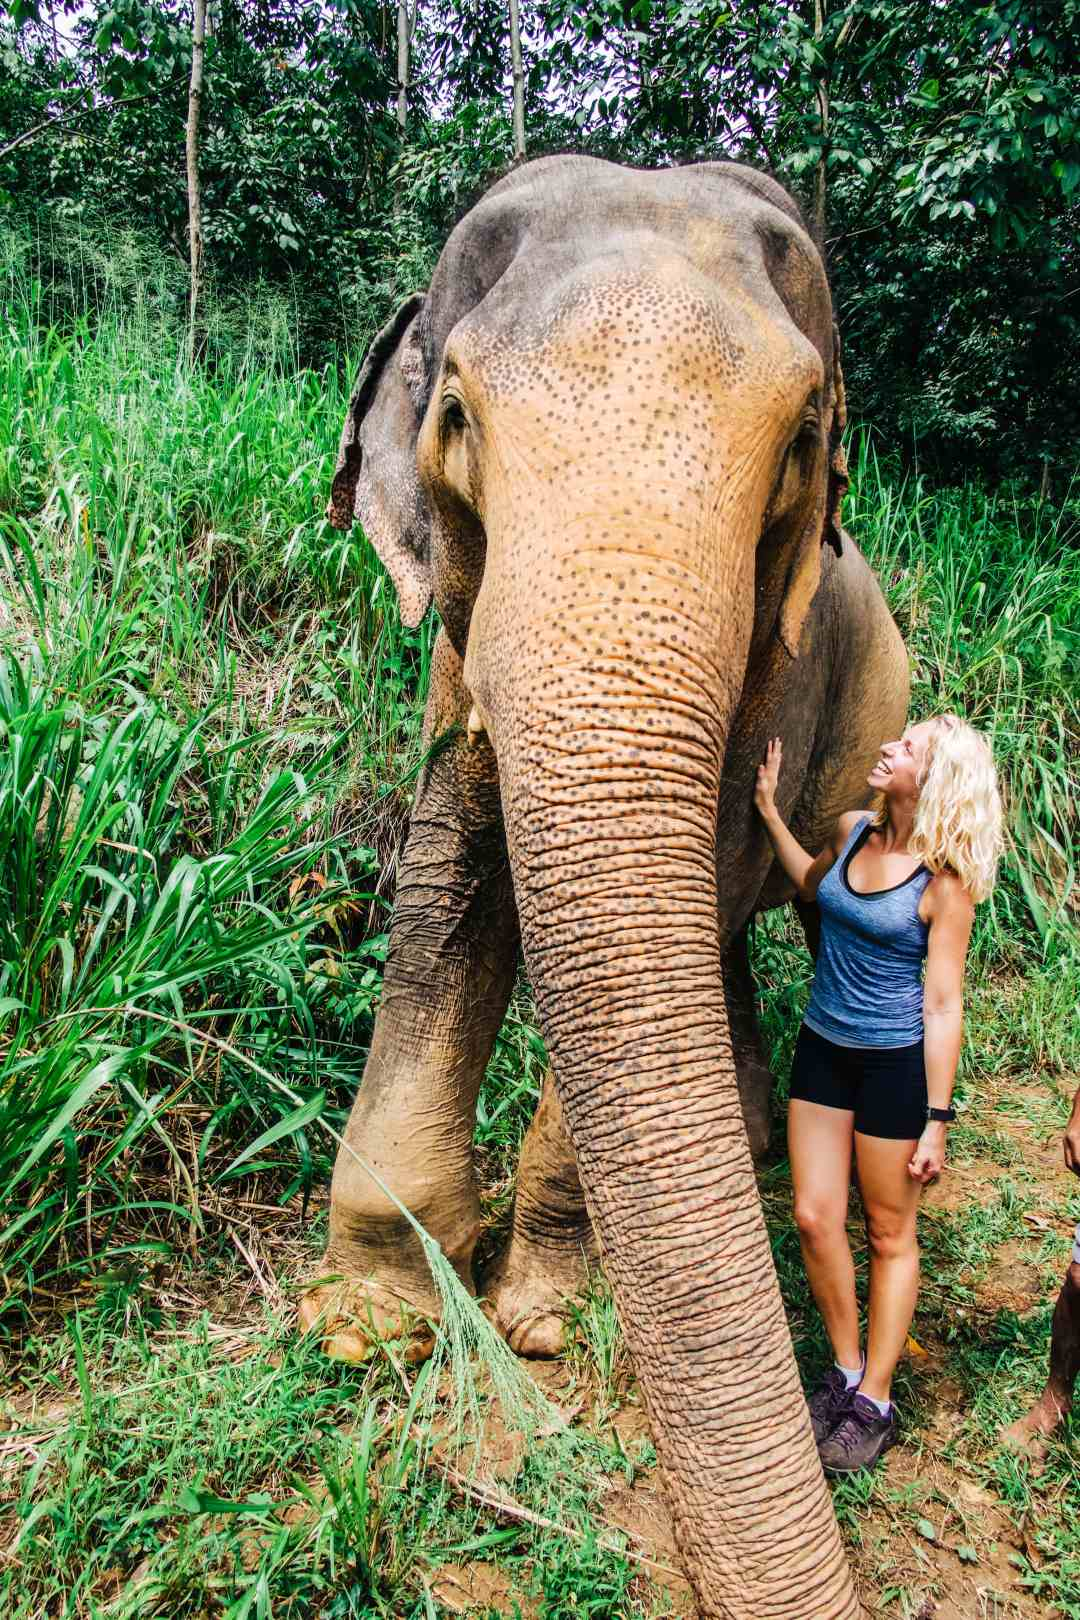 Ever wanted to get up close and personal with elephants? The Elephant Freedom Project is an absolute MUST for anyone visiting Sri Lanka! It was truly an unforgettable experience and one of the best days I have ever had while traveling or volunteering around the world. Read more at www.thefivefoottraveler.com